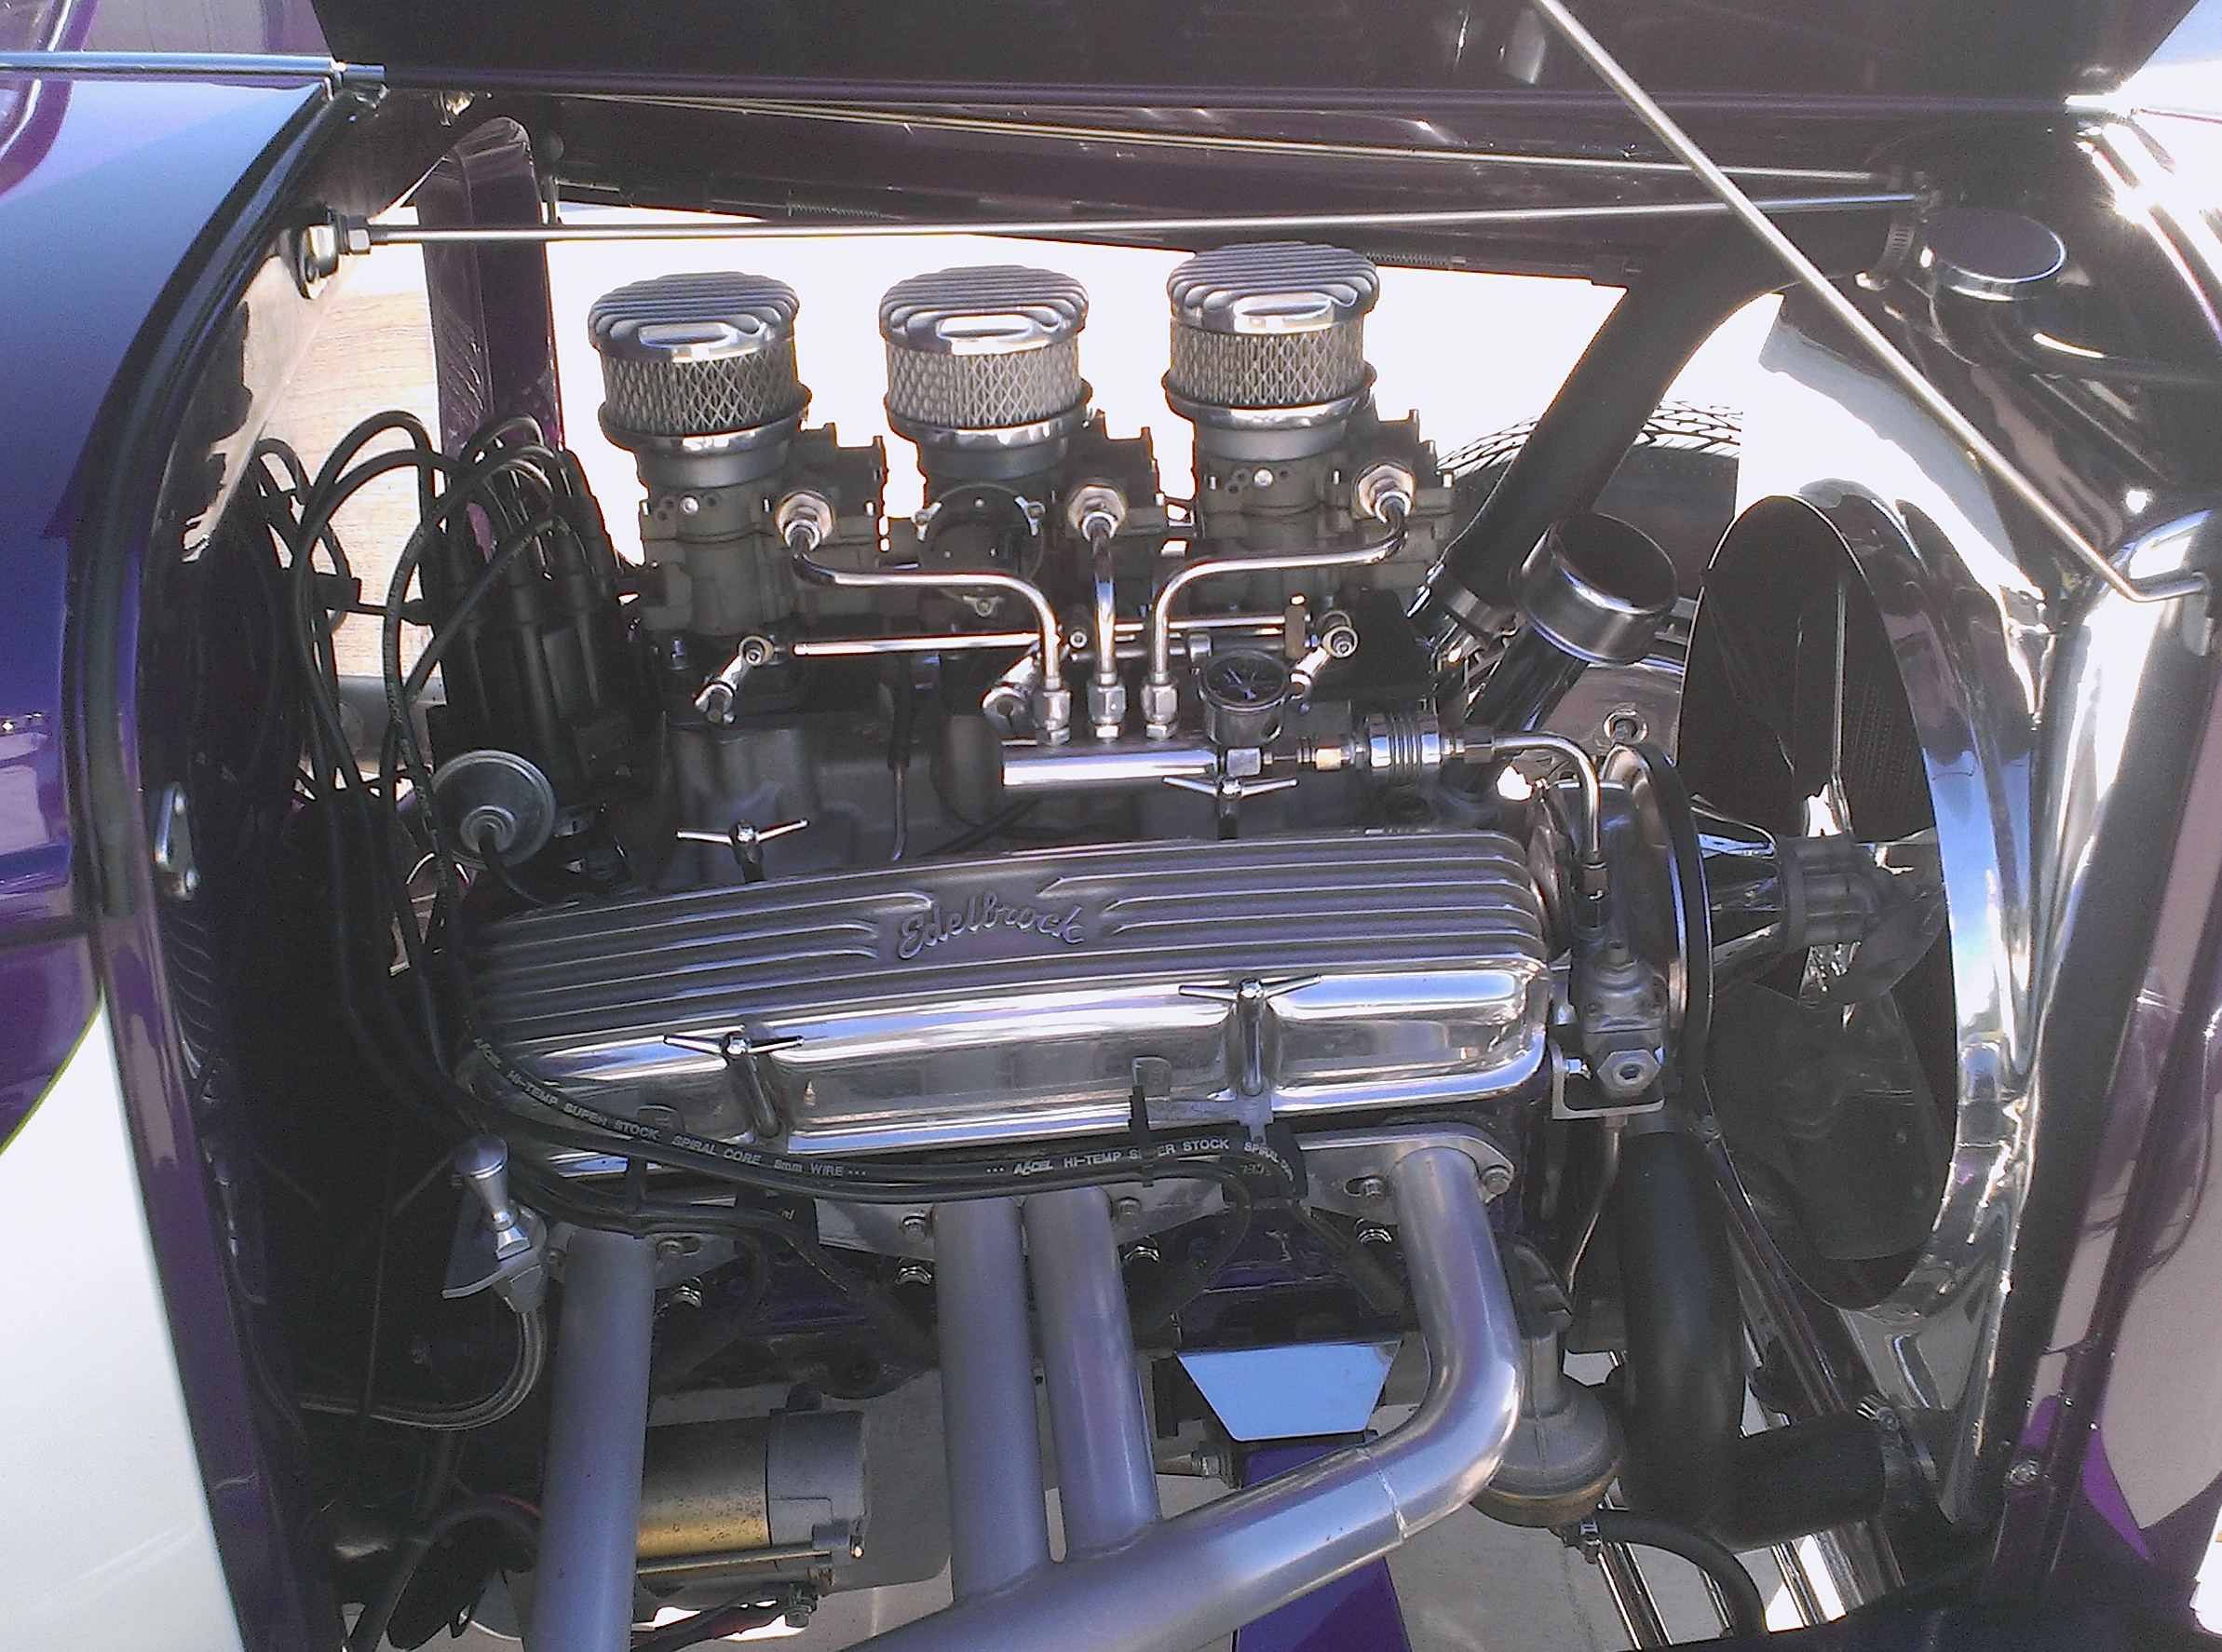 AUTOMOTION<br/>Hot Rod Carbs<br/>Tri-Power Built To Last<br/>16+ years without any additional maintenance or tuning